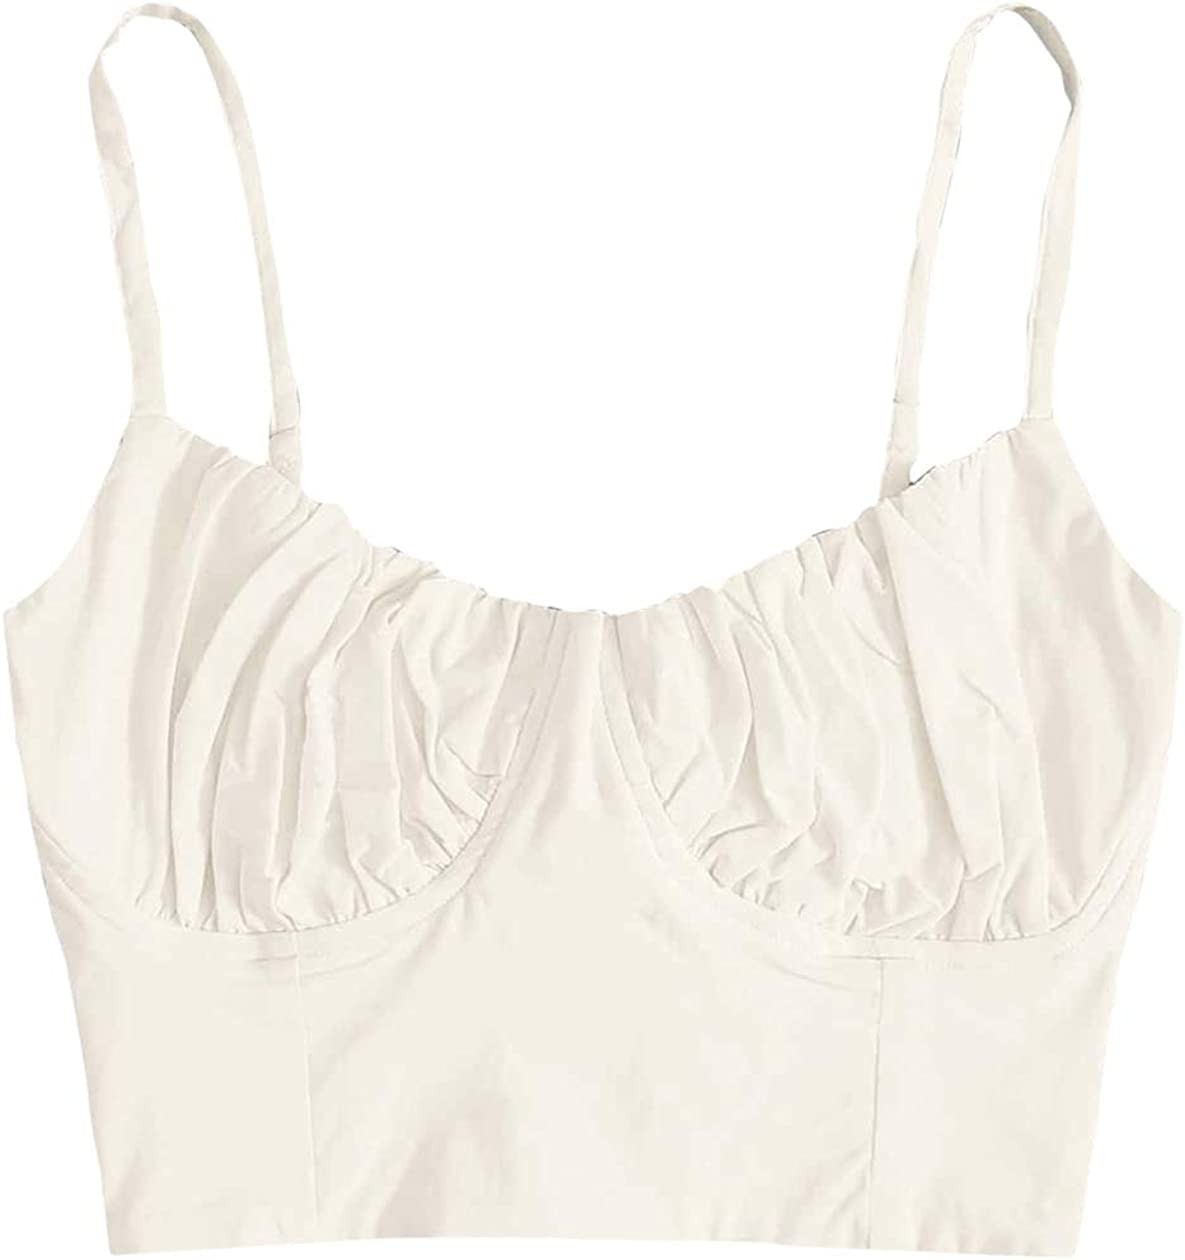 Romwe Women's Casual V Neck Sleeveless Lace Up Back Crop Cami Top Camisole